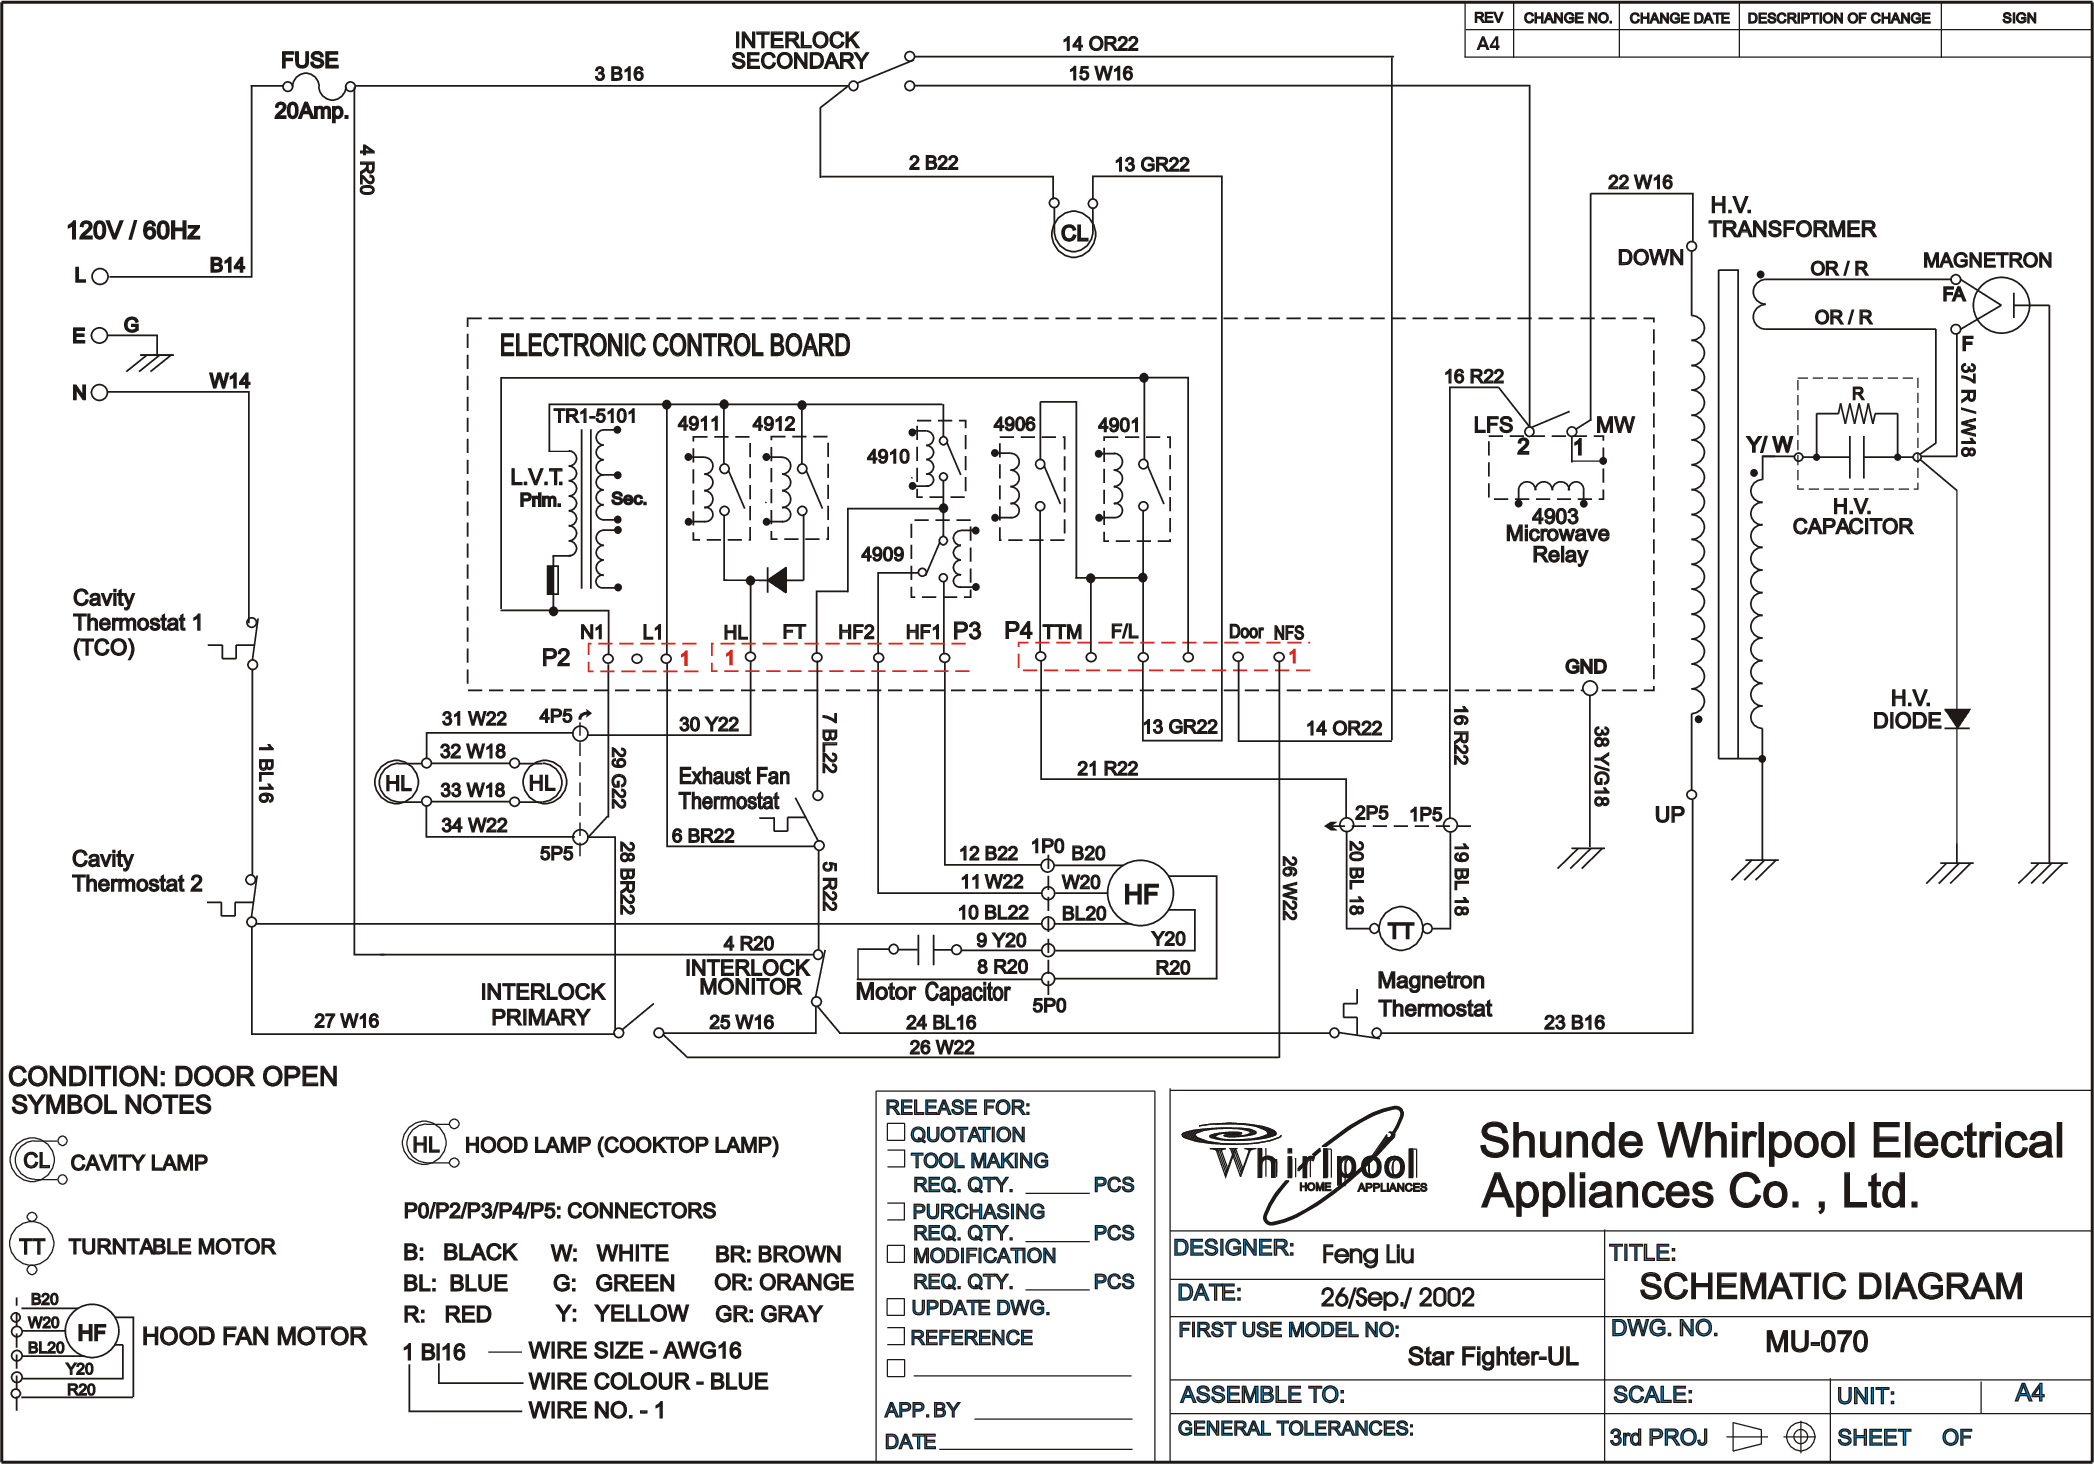 Whirlpool Microwave Schematic Diagram - 1996 Toyota Camry Radiator Fan Wiring  Diagram for Wiring Diagram SchematicsWiring Diagram Schematics